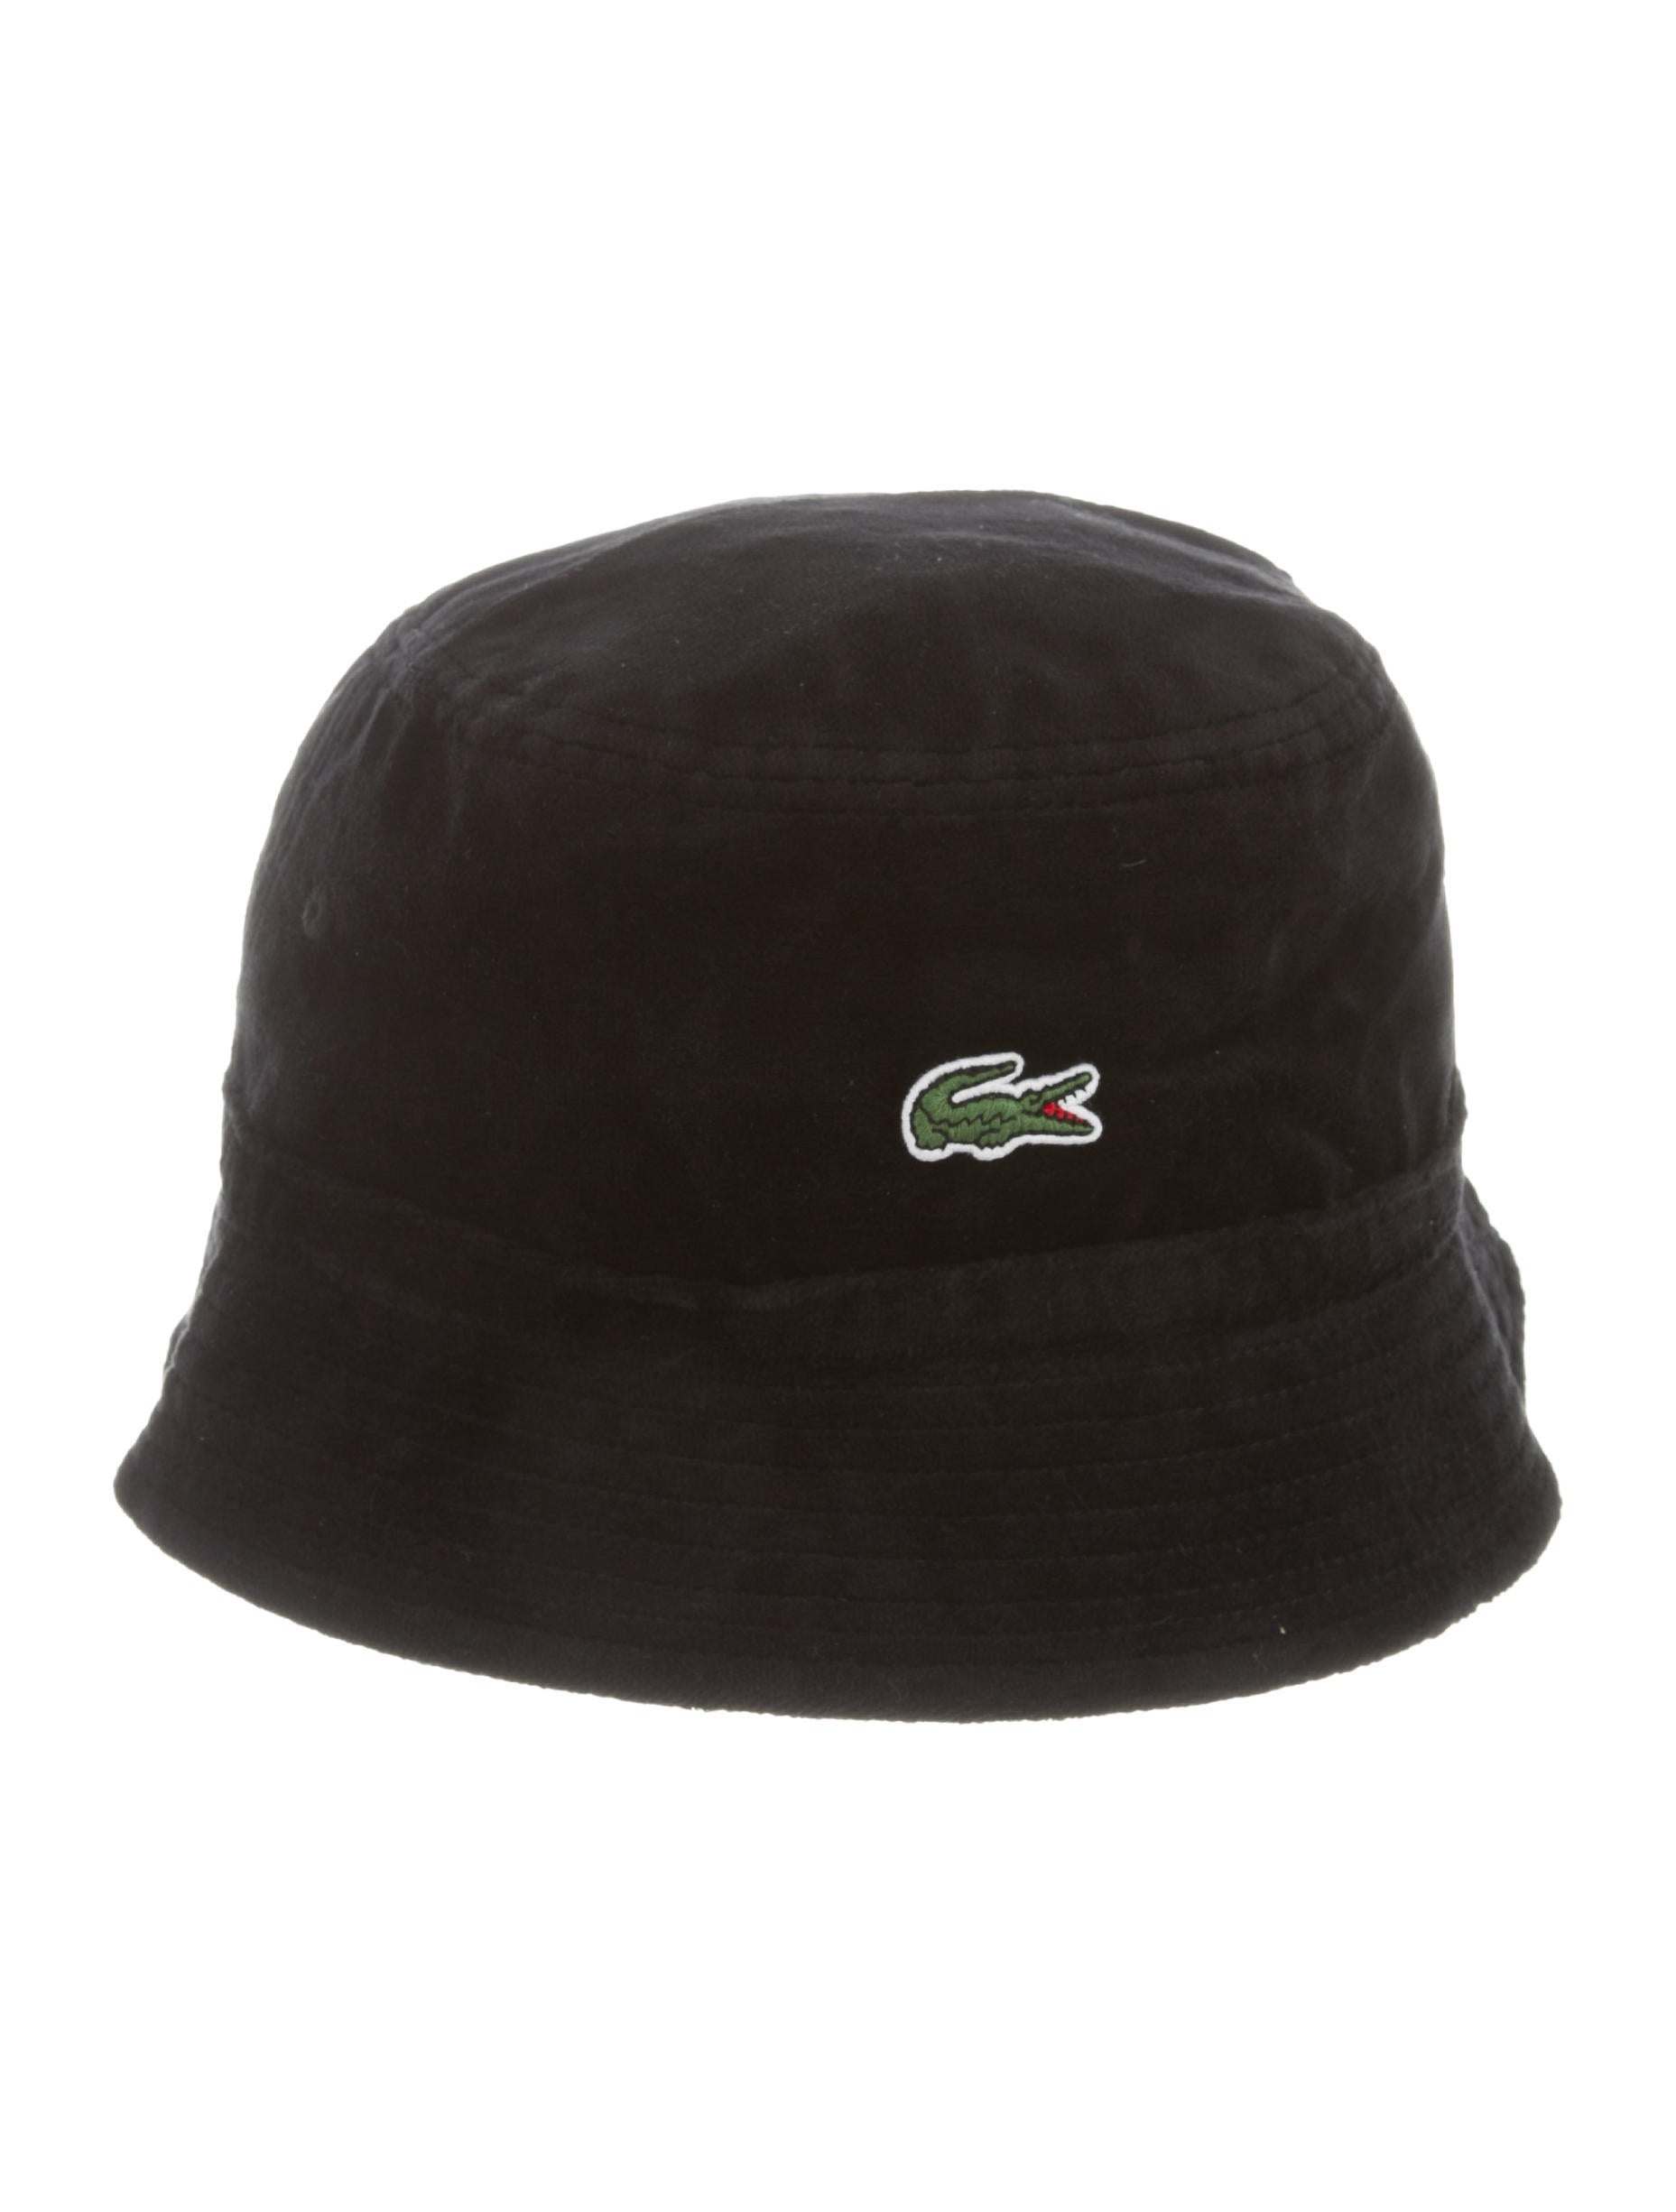 Supreme x Lacoste 2018 Velour Bucket Hat w  Tags - Accessories ... 5487b3b05f9